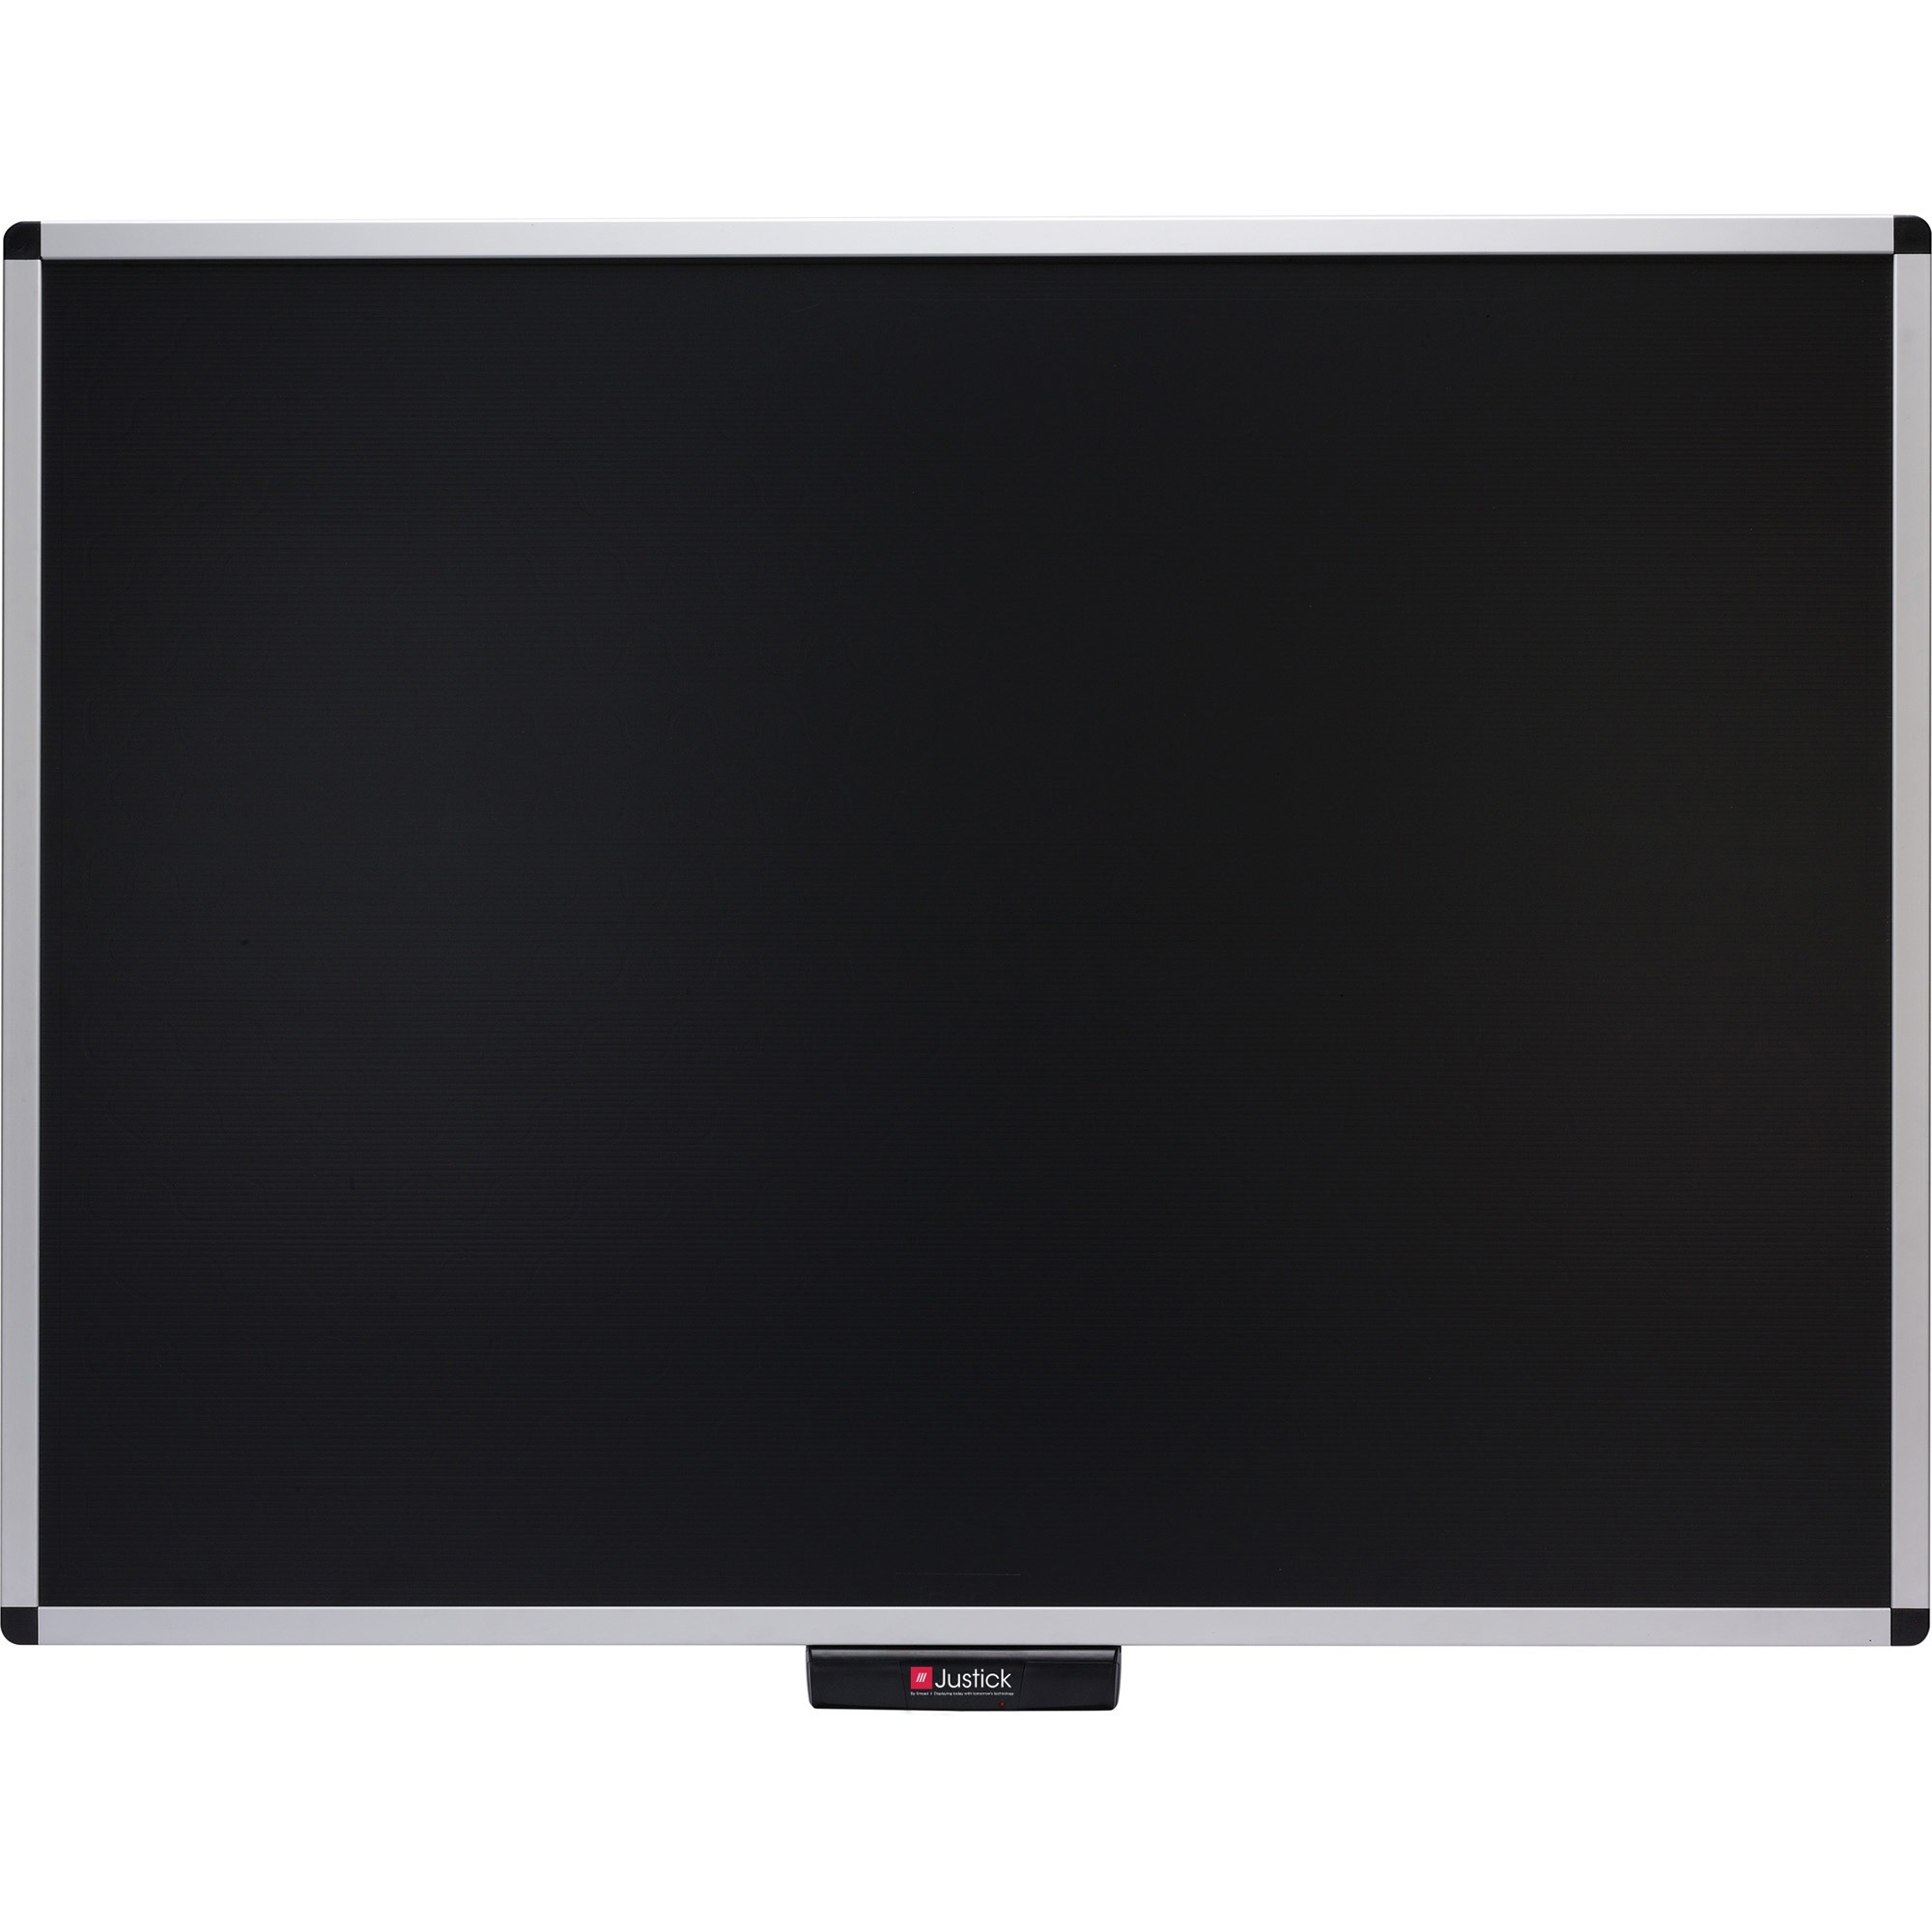 Smead Manufacturing Company Justick Aluminum Frame Black Electro Bulletin Board - 36 Height X 48 Width - Black Justick Electro Adhesion Surface Technology - Aluminum Frame - 1 Each